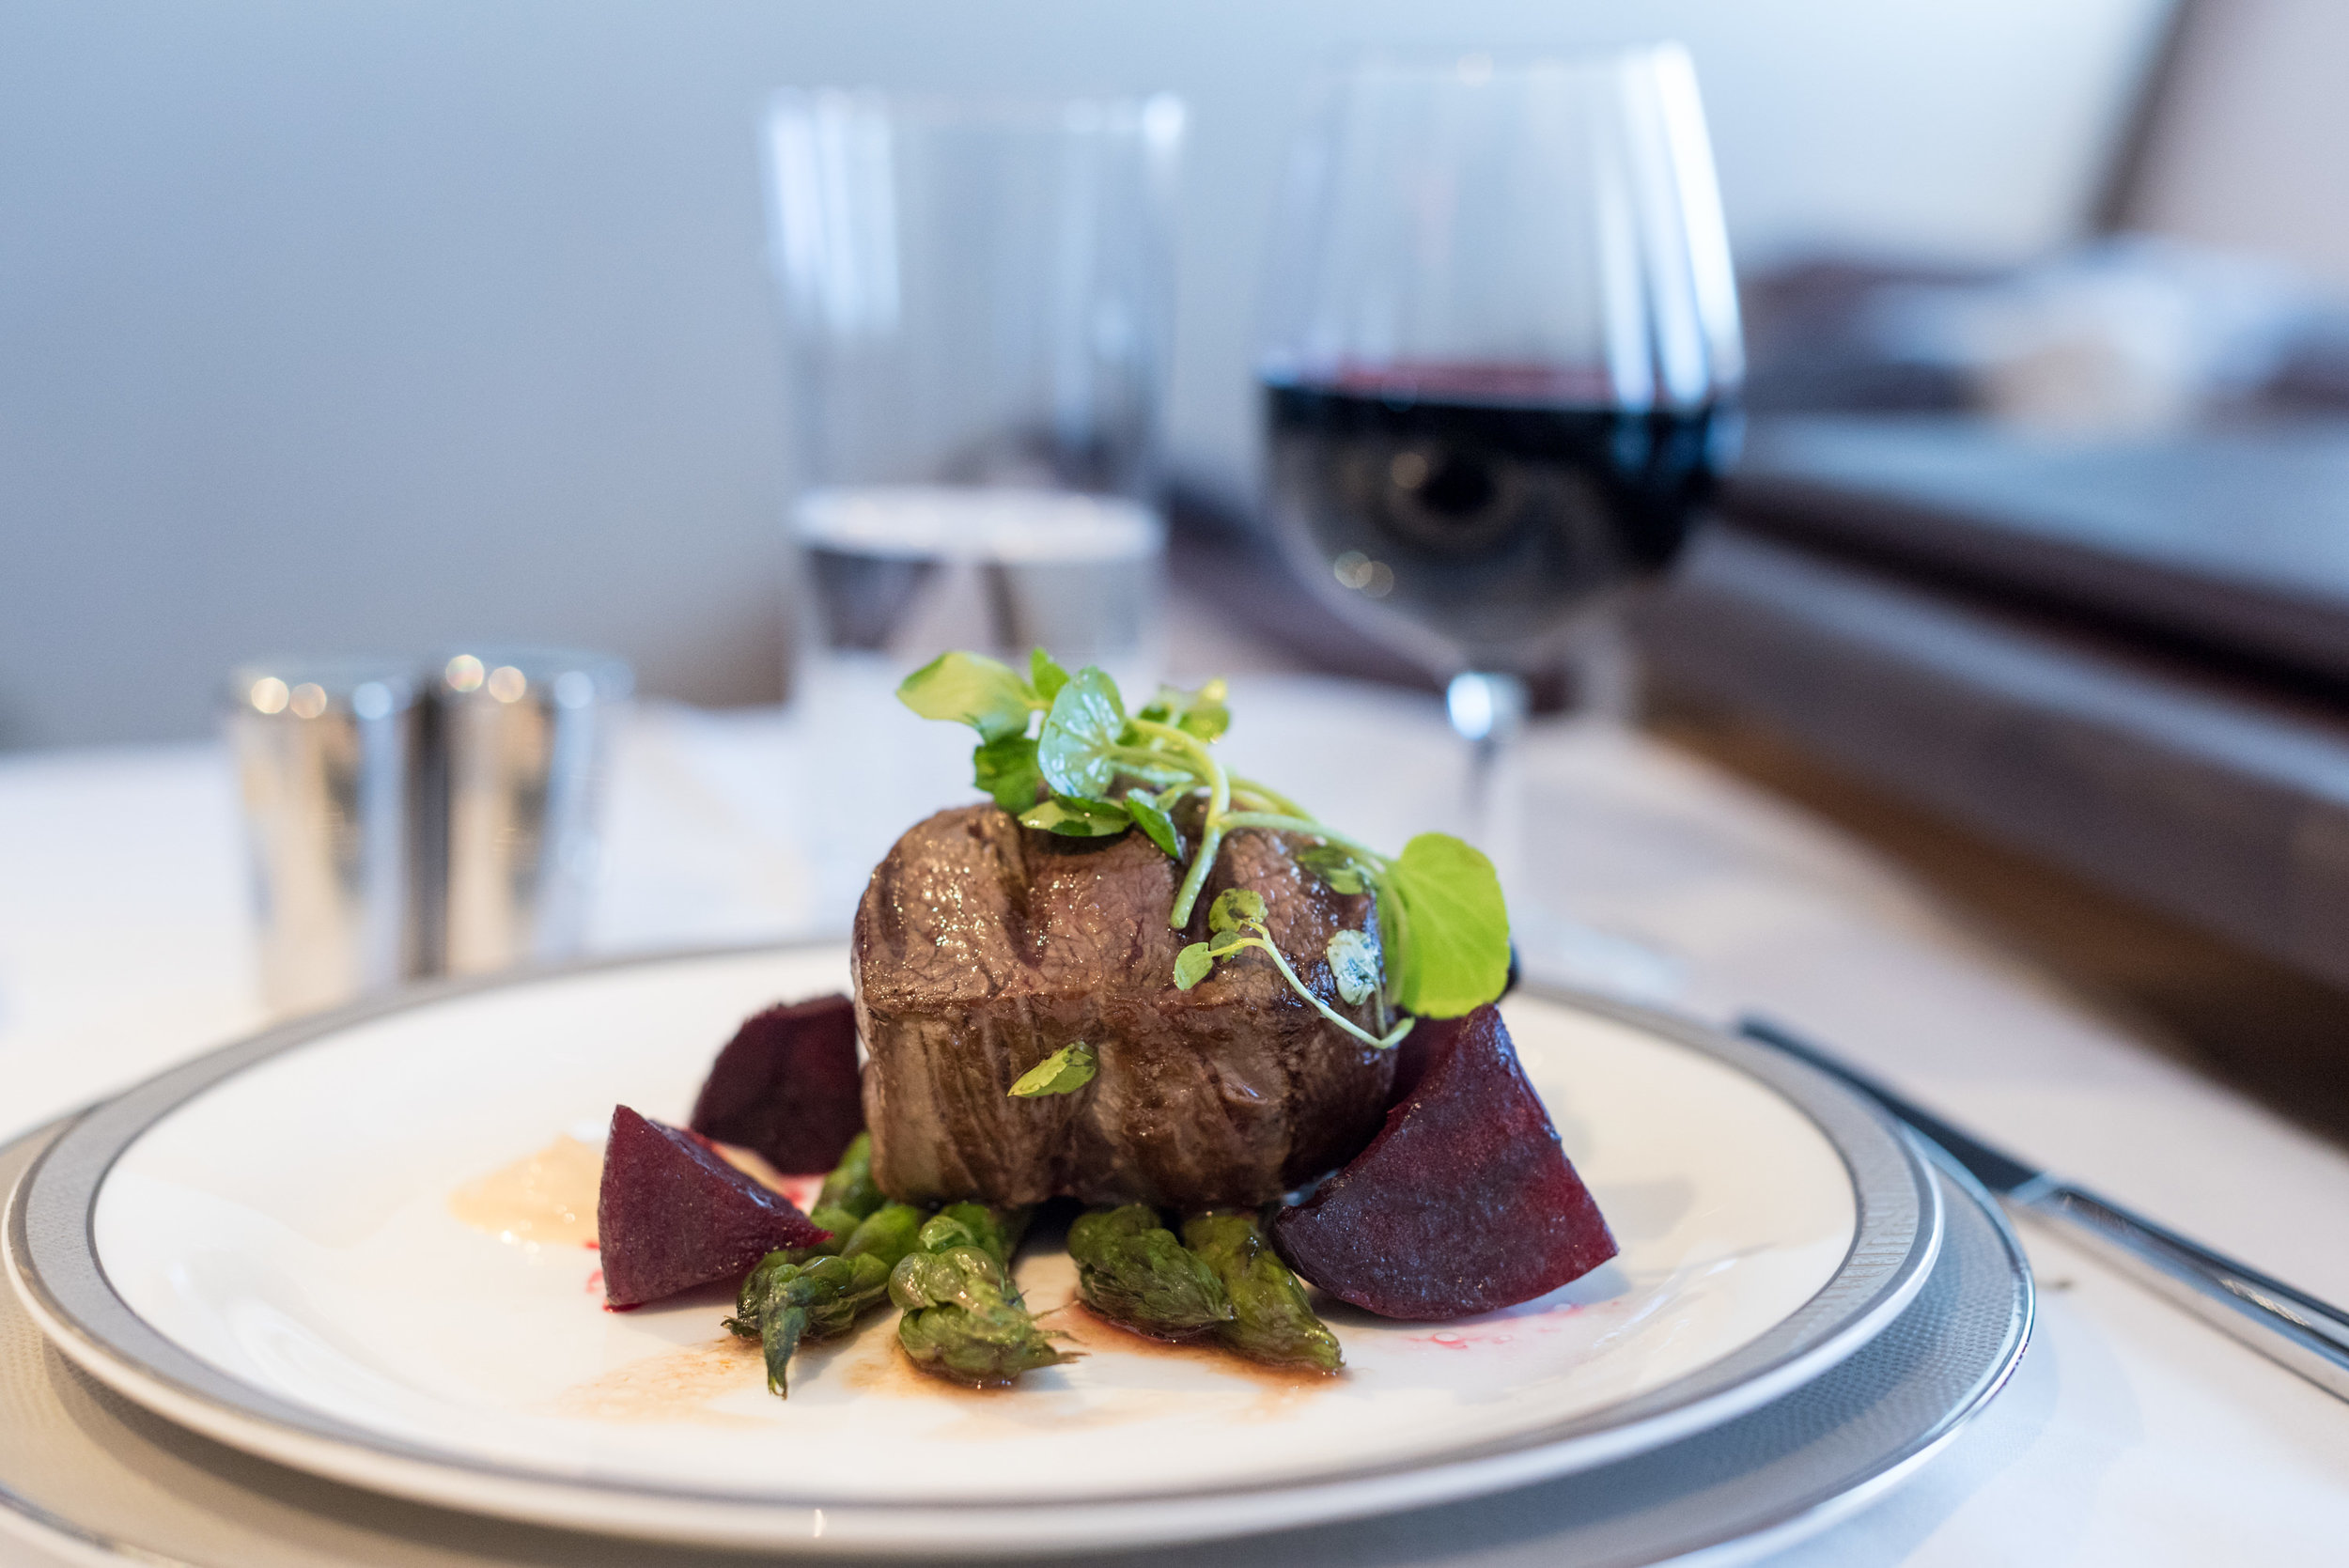 Seared Beef Fillet with Herbs - Lunch Service  Singapore Airlines Suites A380-800 - AKL to SIN